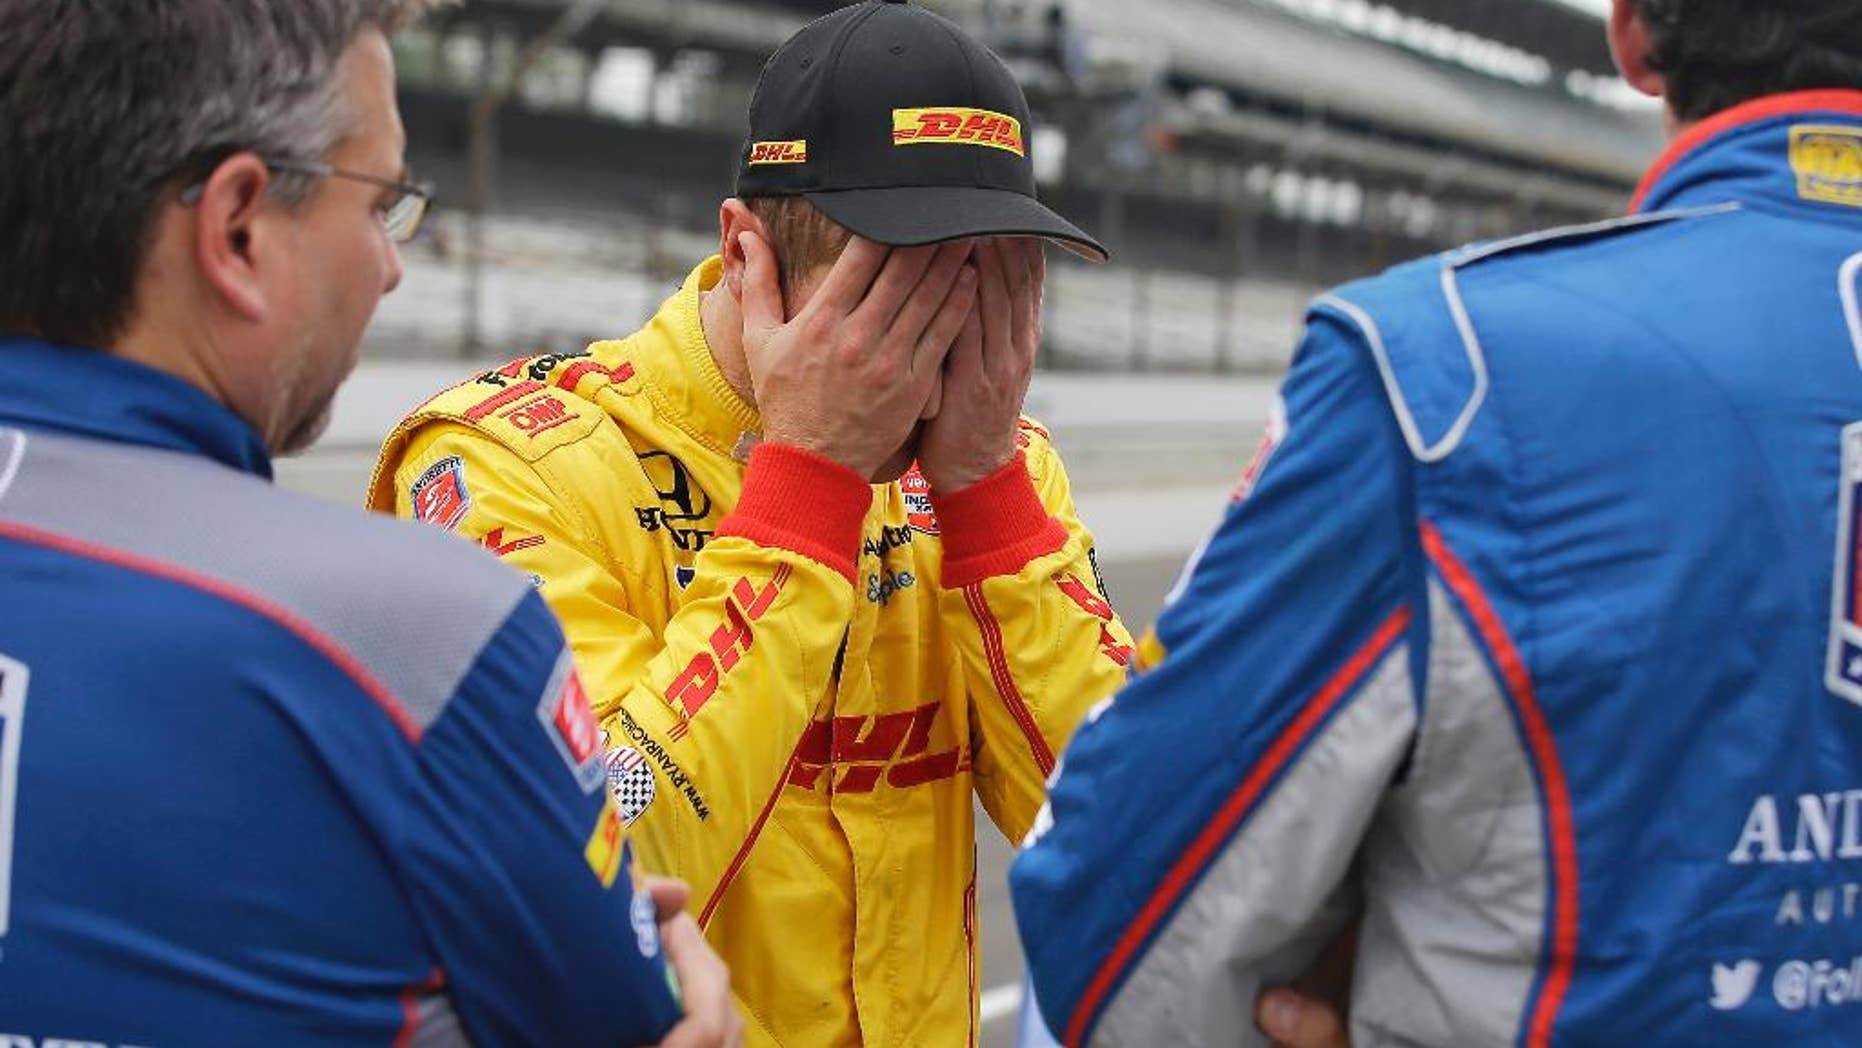 Ryan Hunter-Reay reacts after watching the wreck of James Hinchcliffe, of Canada, during practice for the Indianapolis 500 auto race at Indianapolis Motor Speedway in Indianapolis, Monday, May 18, 2015.  (AP Photo/Darron Cummings)